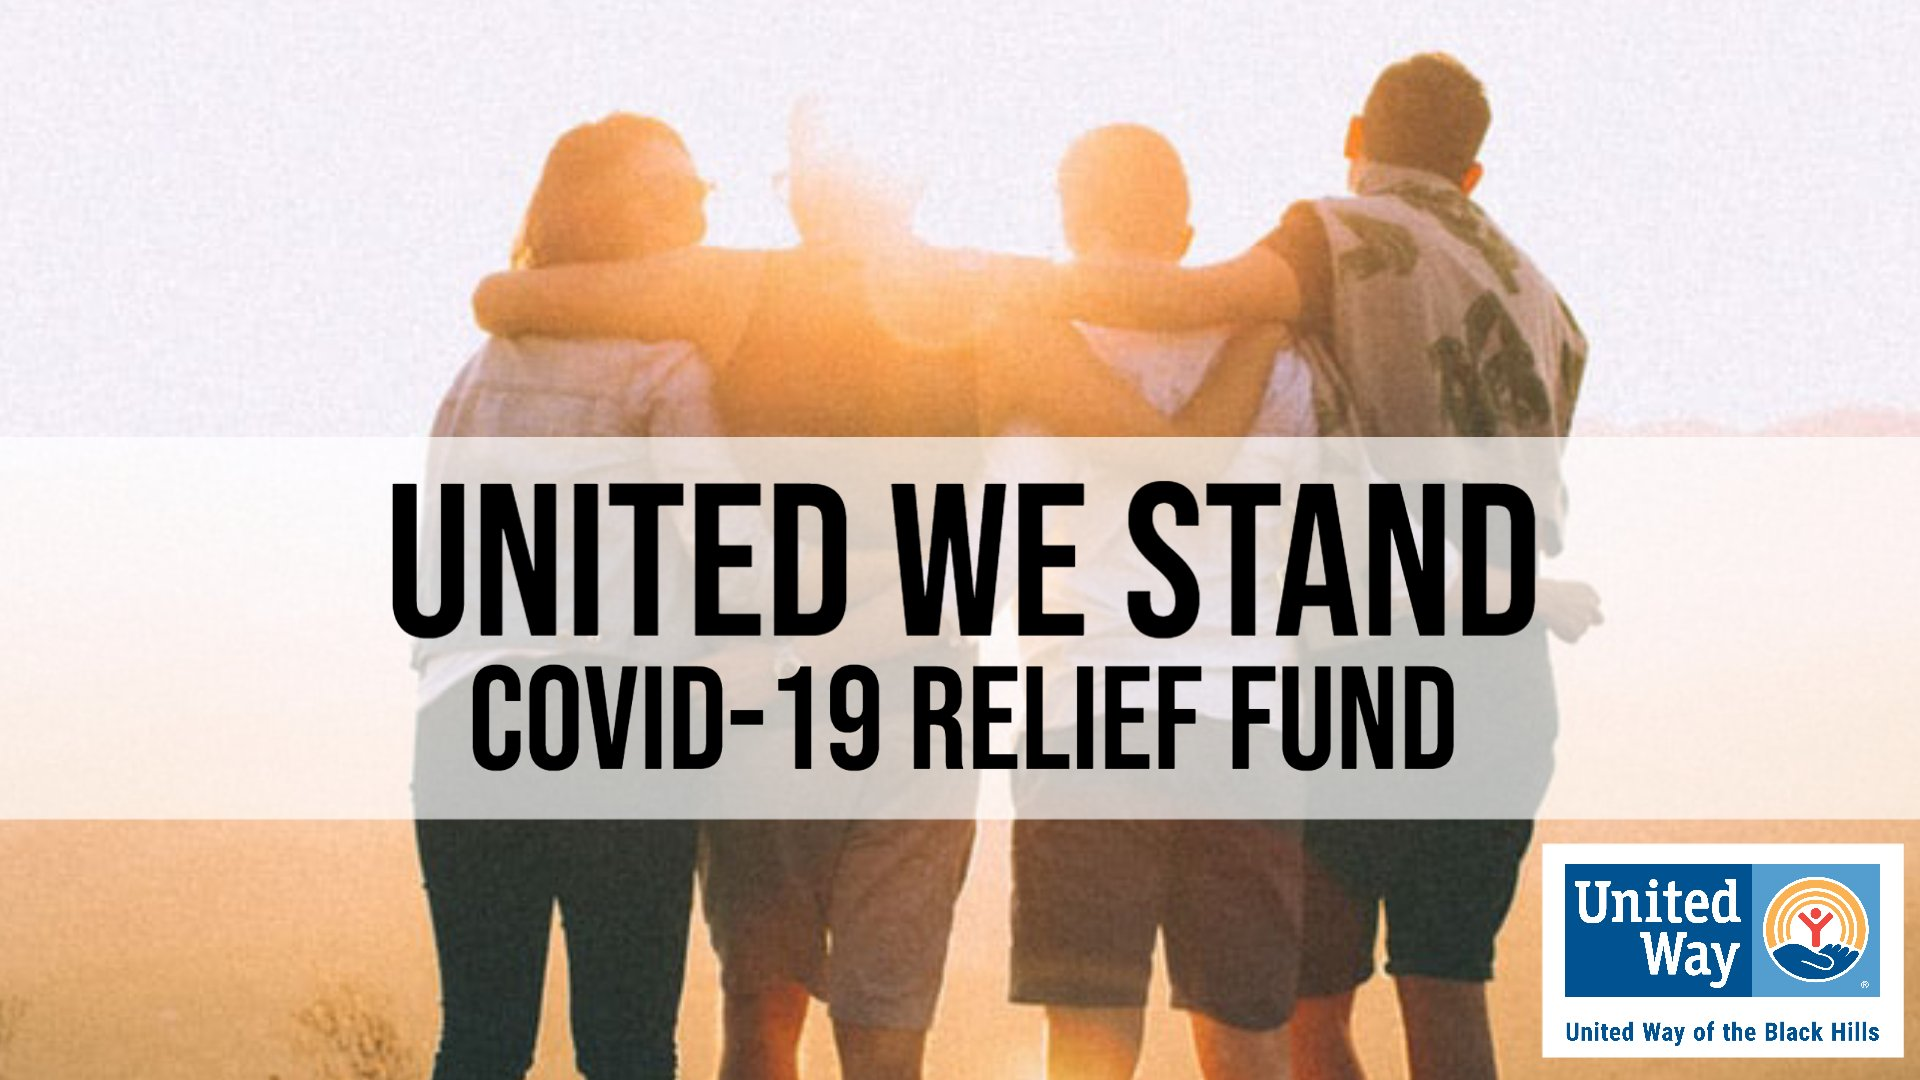 United Way Relief Fund